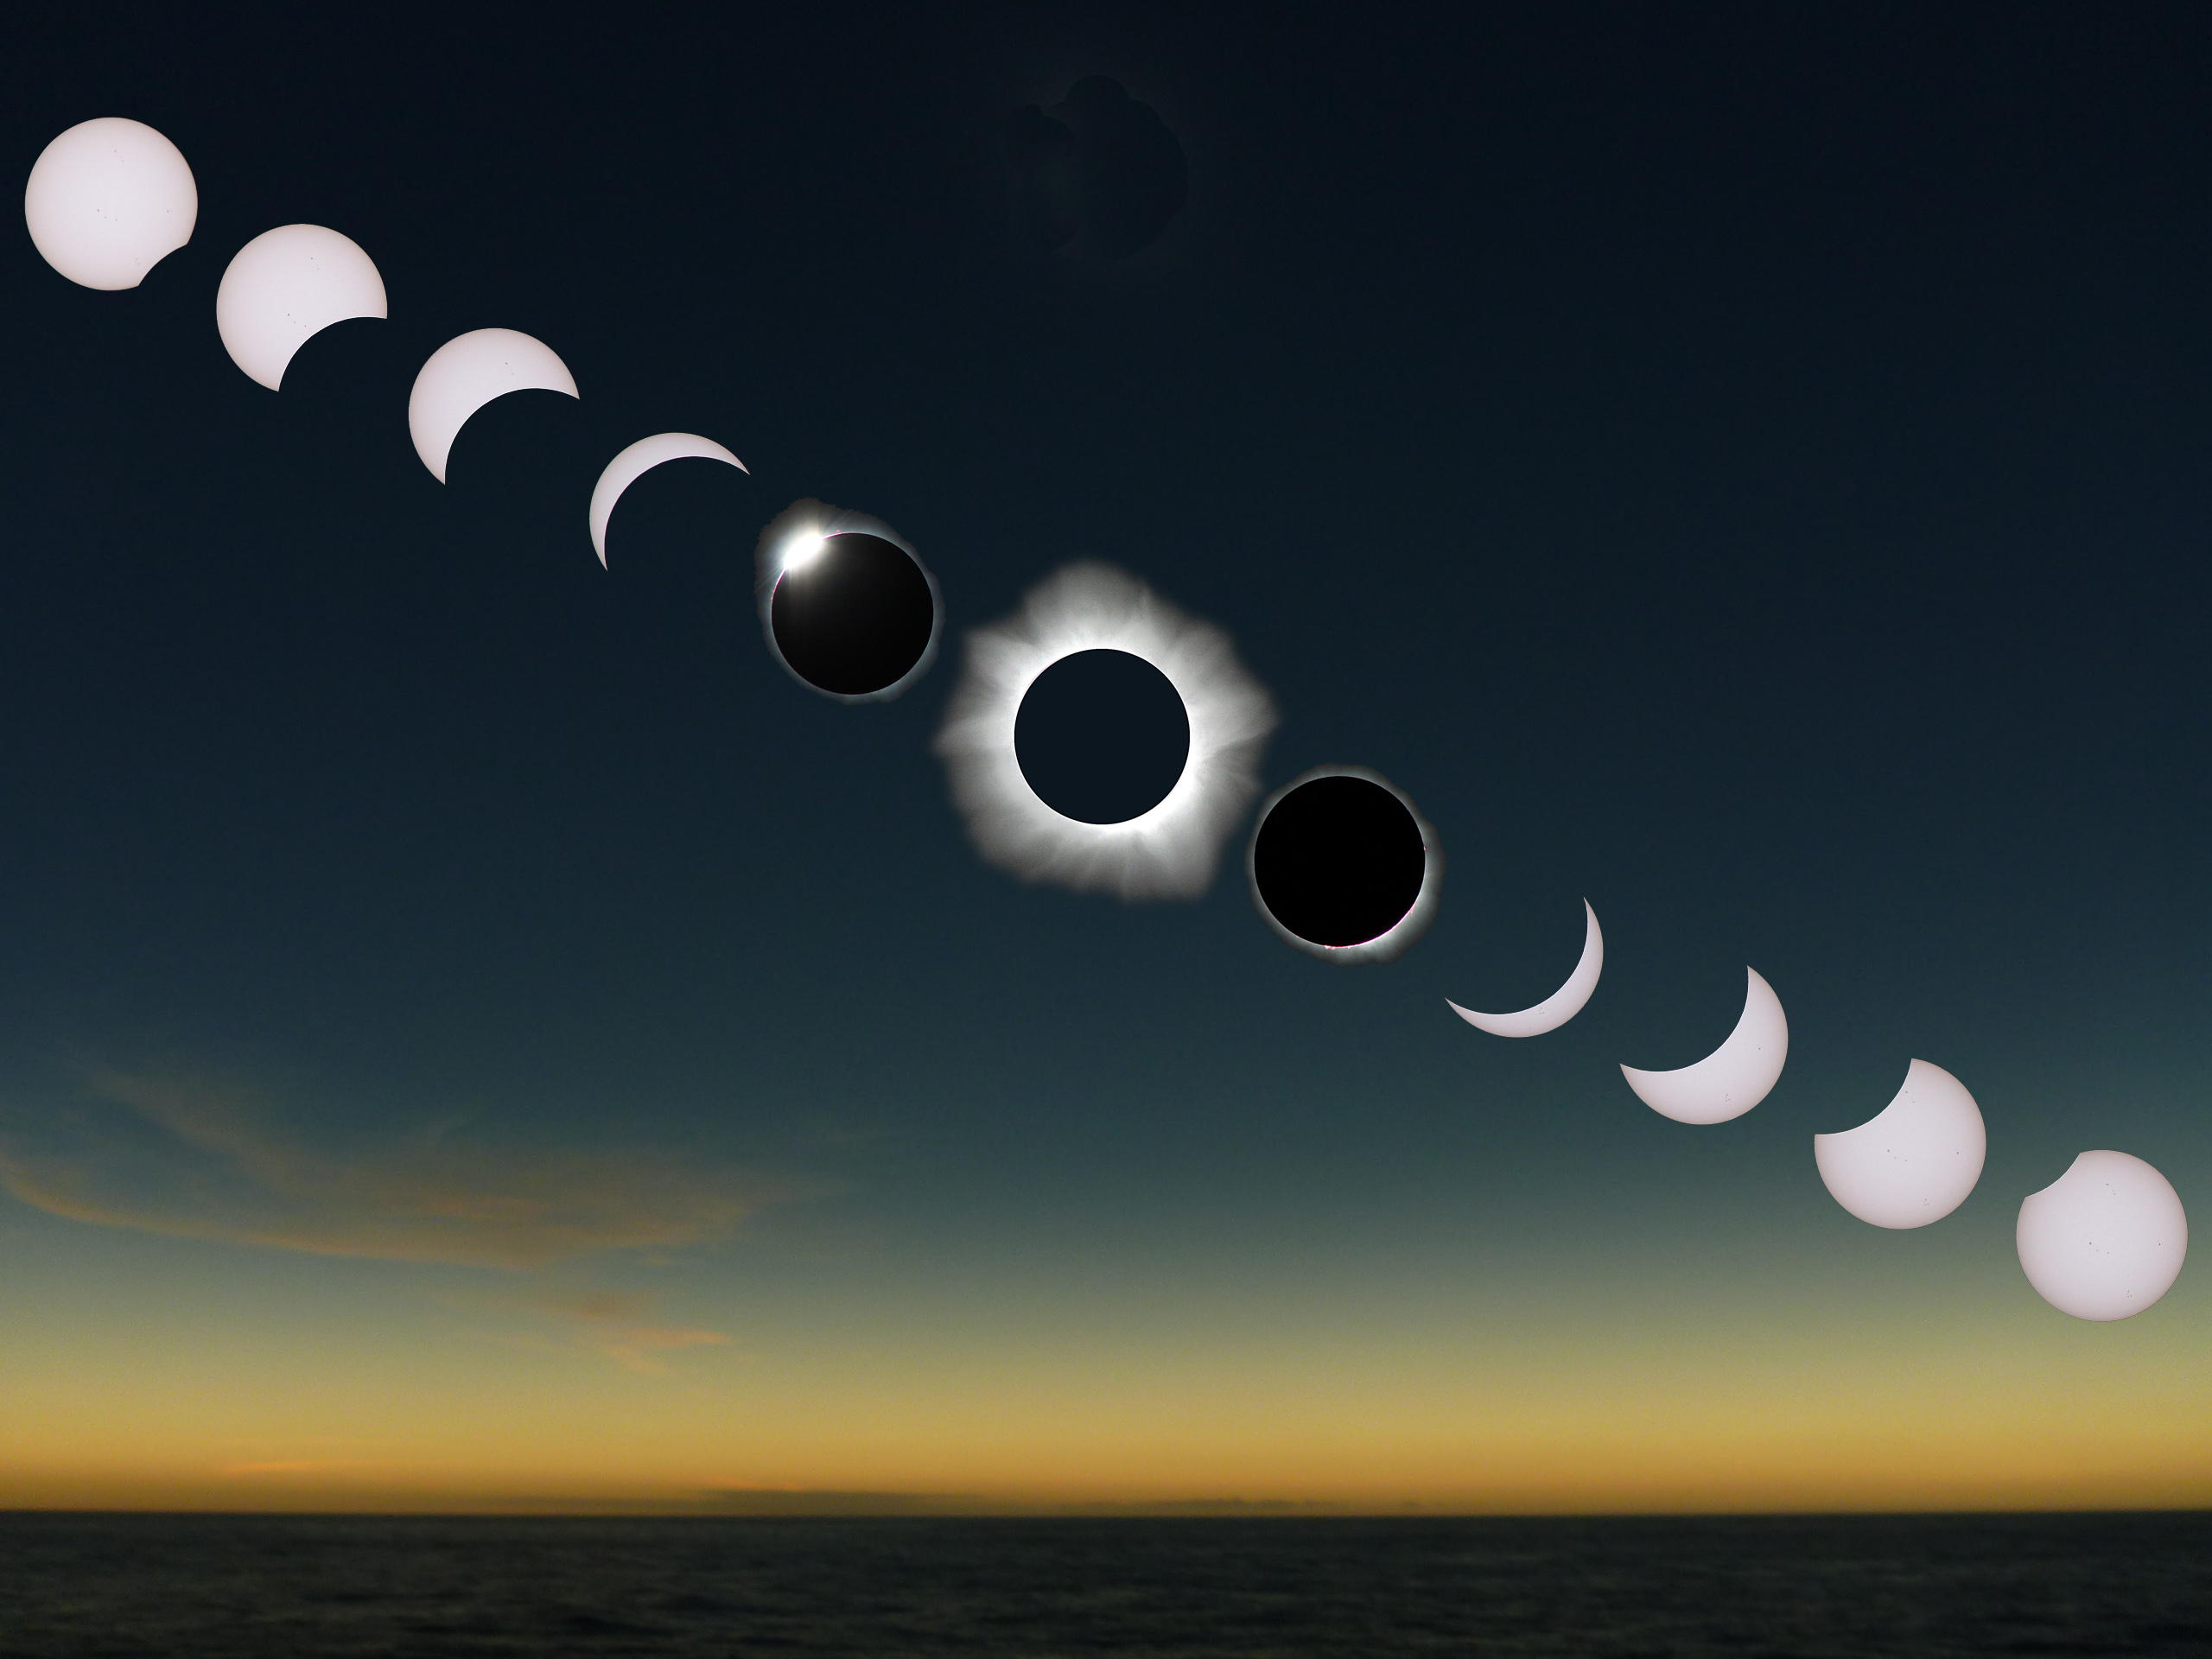 Eclipse sequence by Rick Fienberg